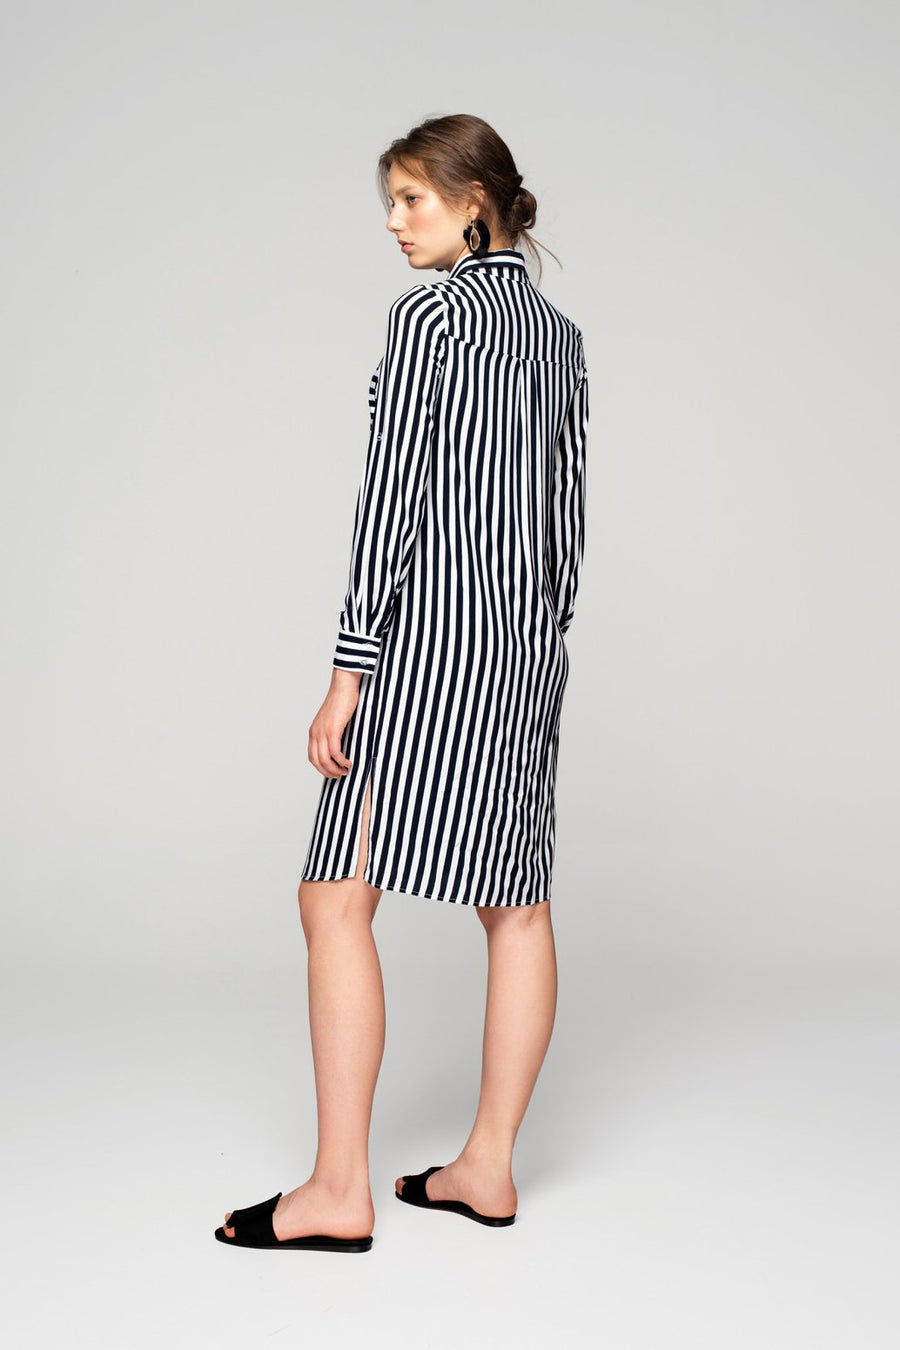 Ksusha Simple Shirt Dress